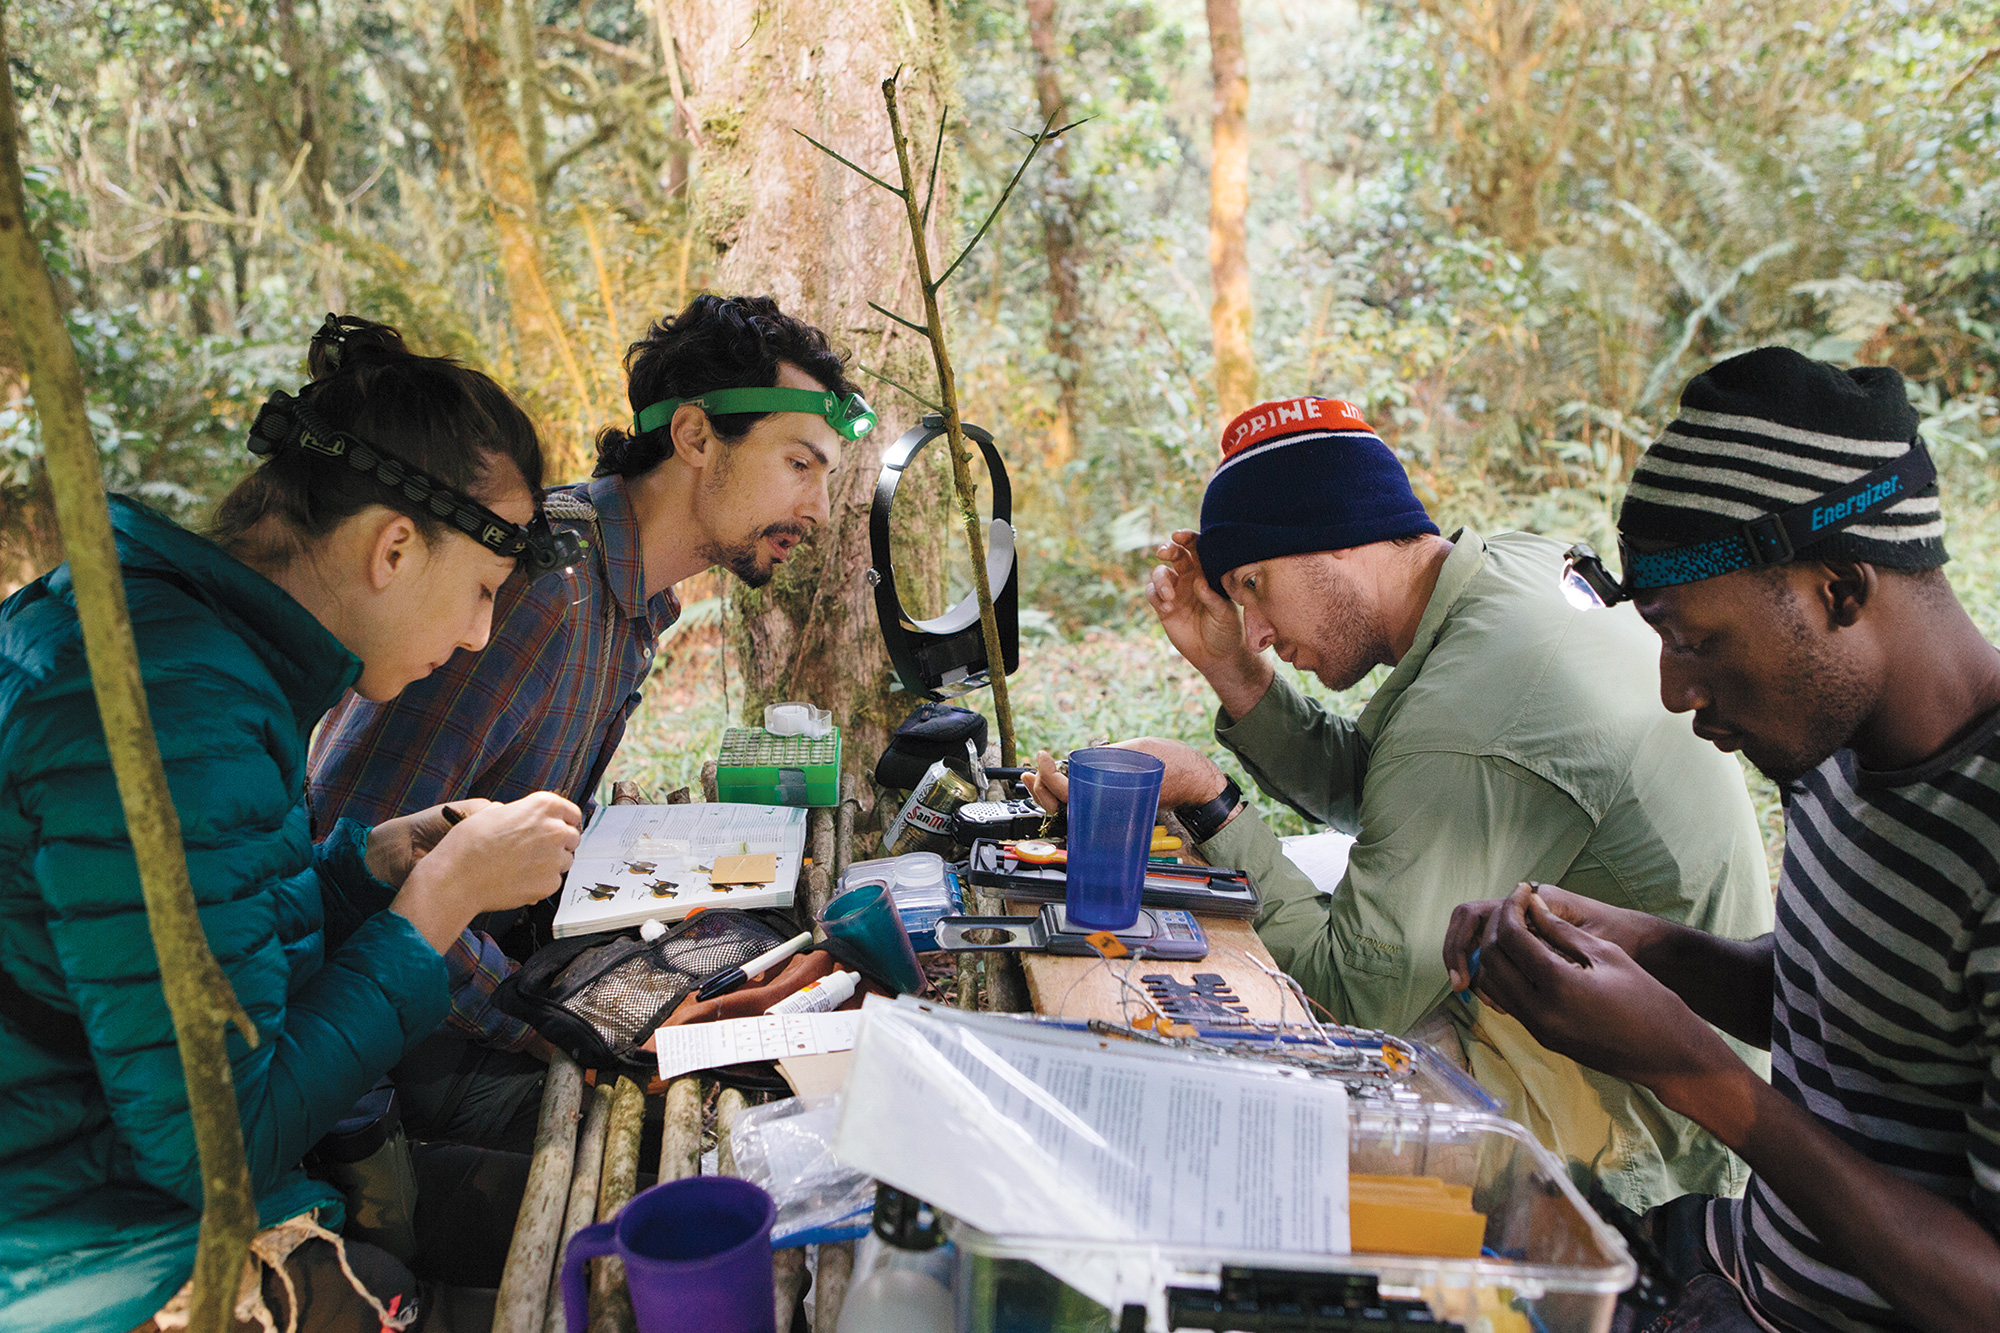 From left: Kristin Brzeski, Luke Powell, Jared Wolfe, and Amancio Motove Etingüe band birds and record biological information at North Camp, deep in the caldera. Tristan Spinski